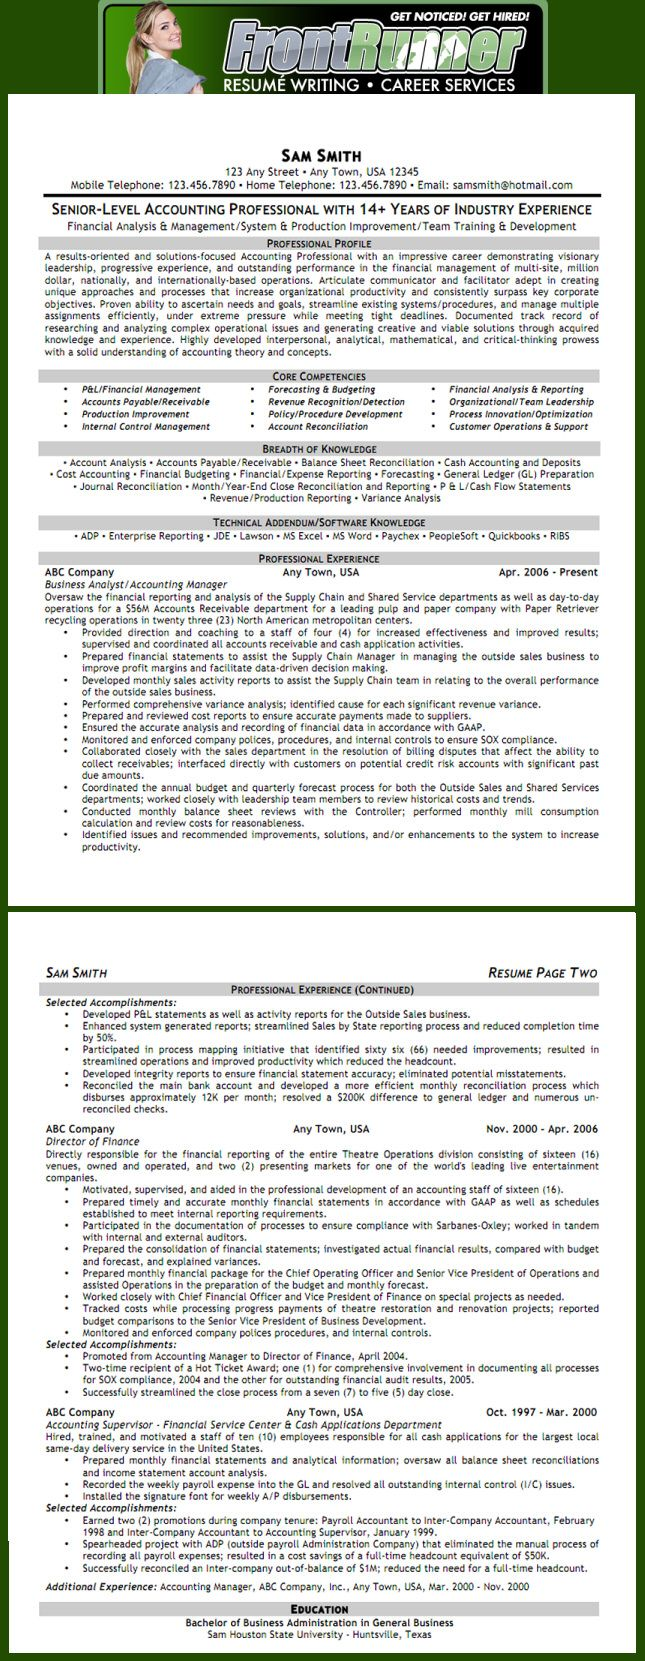 Plant Accountant Sample Resume Delectable Resume  Senior Accounting Executive  Professional Resume .